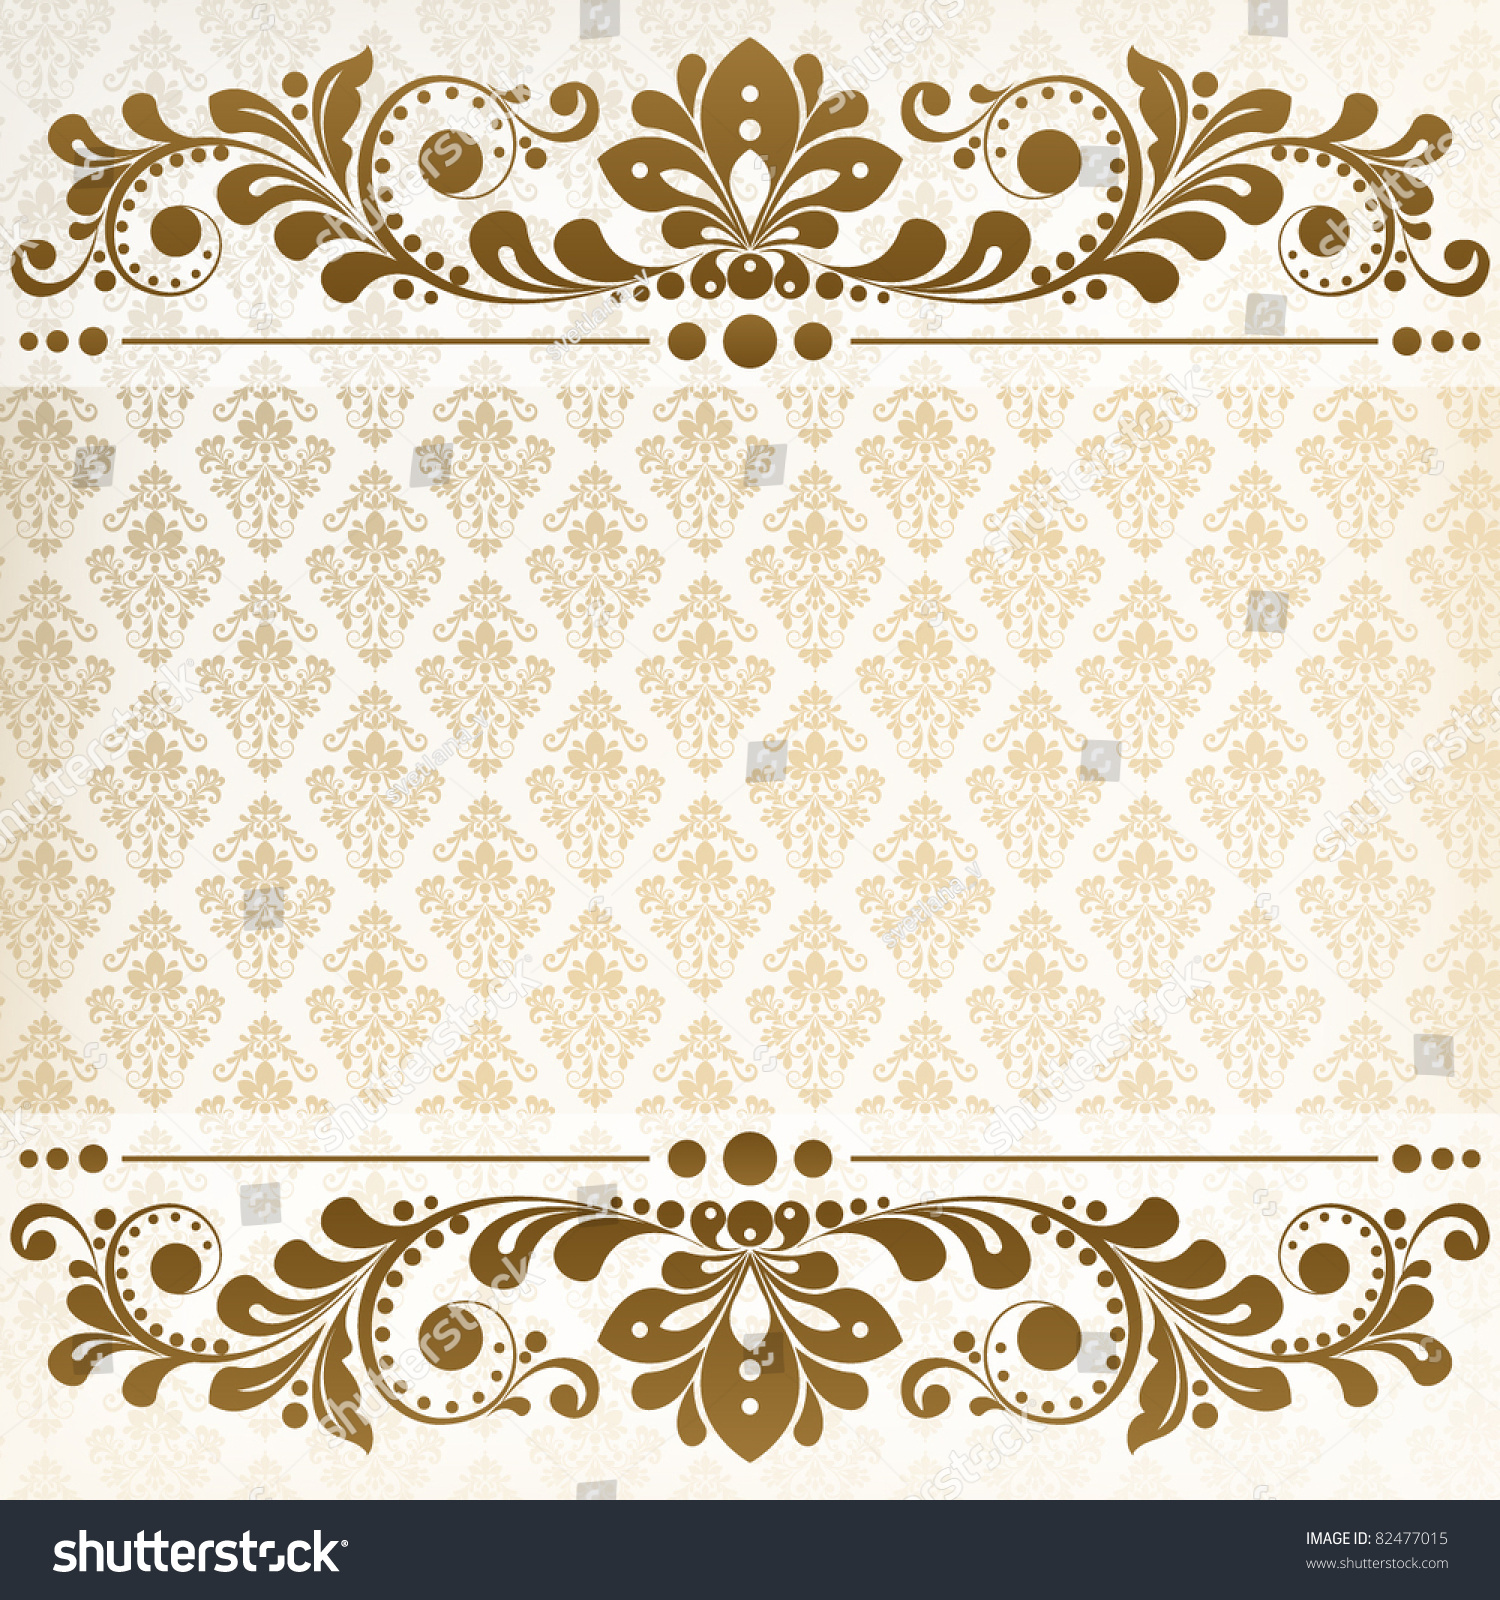 Victorian Design Style Vector Vintage Floral Background Decorative Flowers Stock